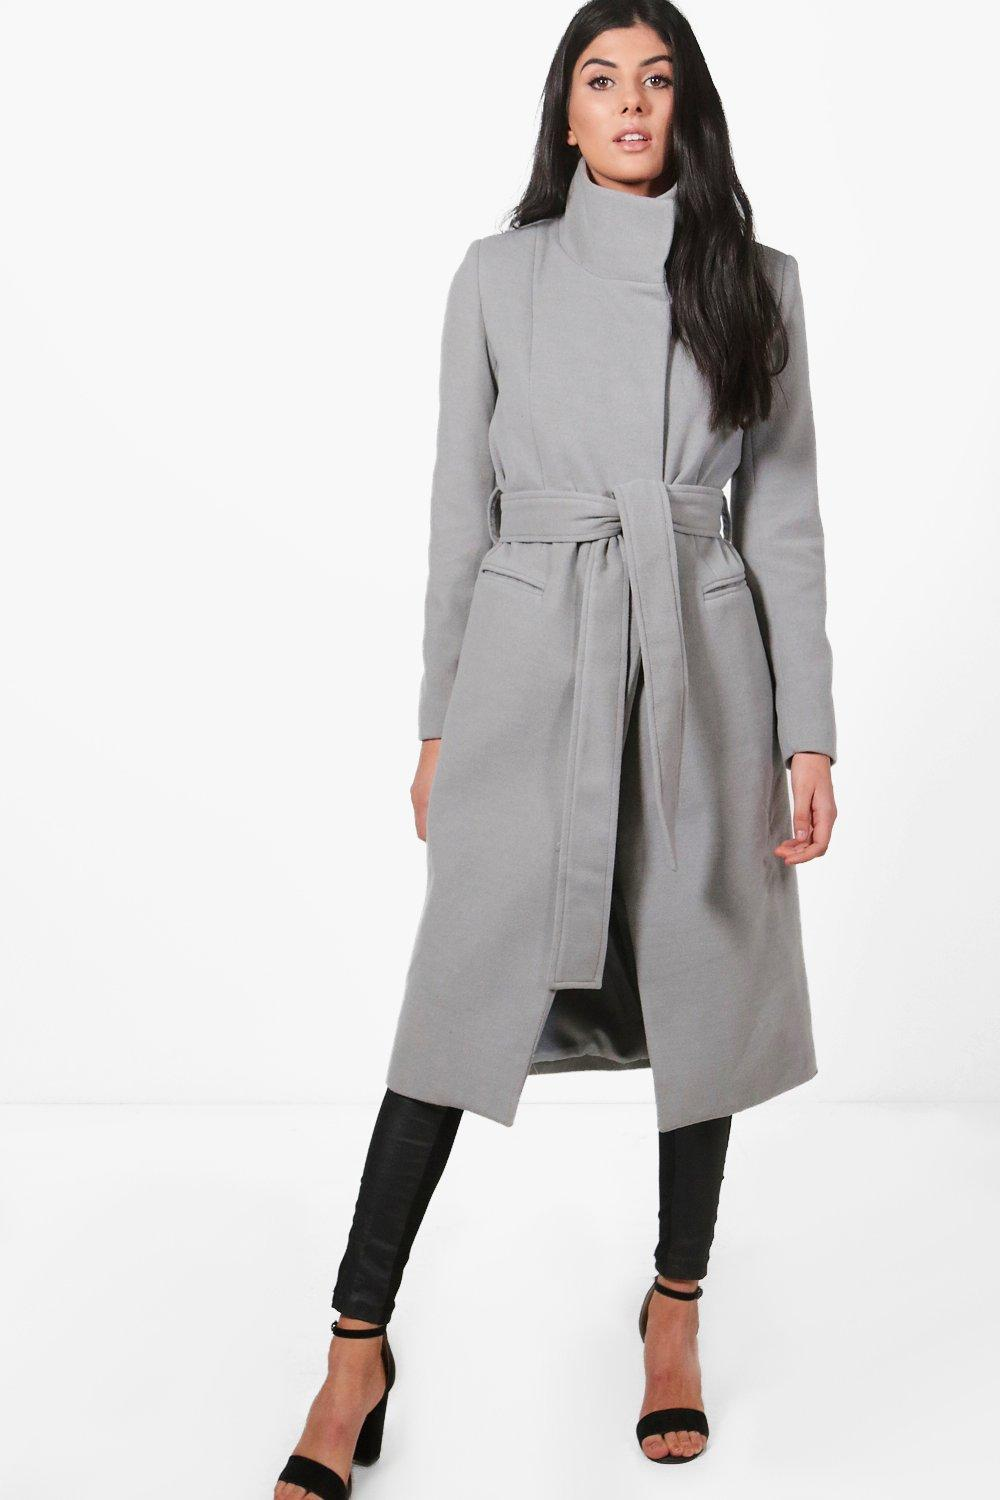 a488d64261af1 Niamh Funnel Neck Wool Coat. Hover to zoom